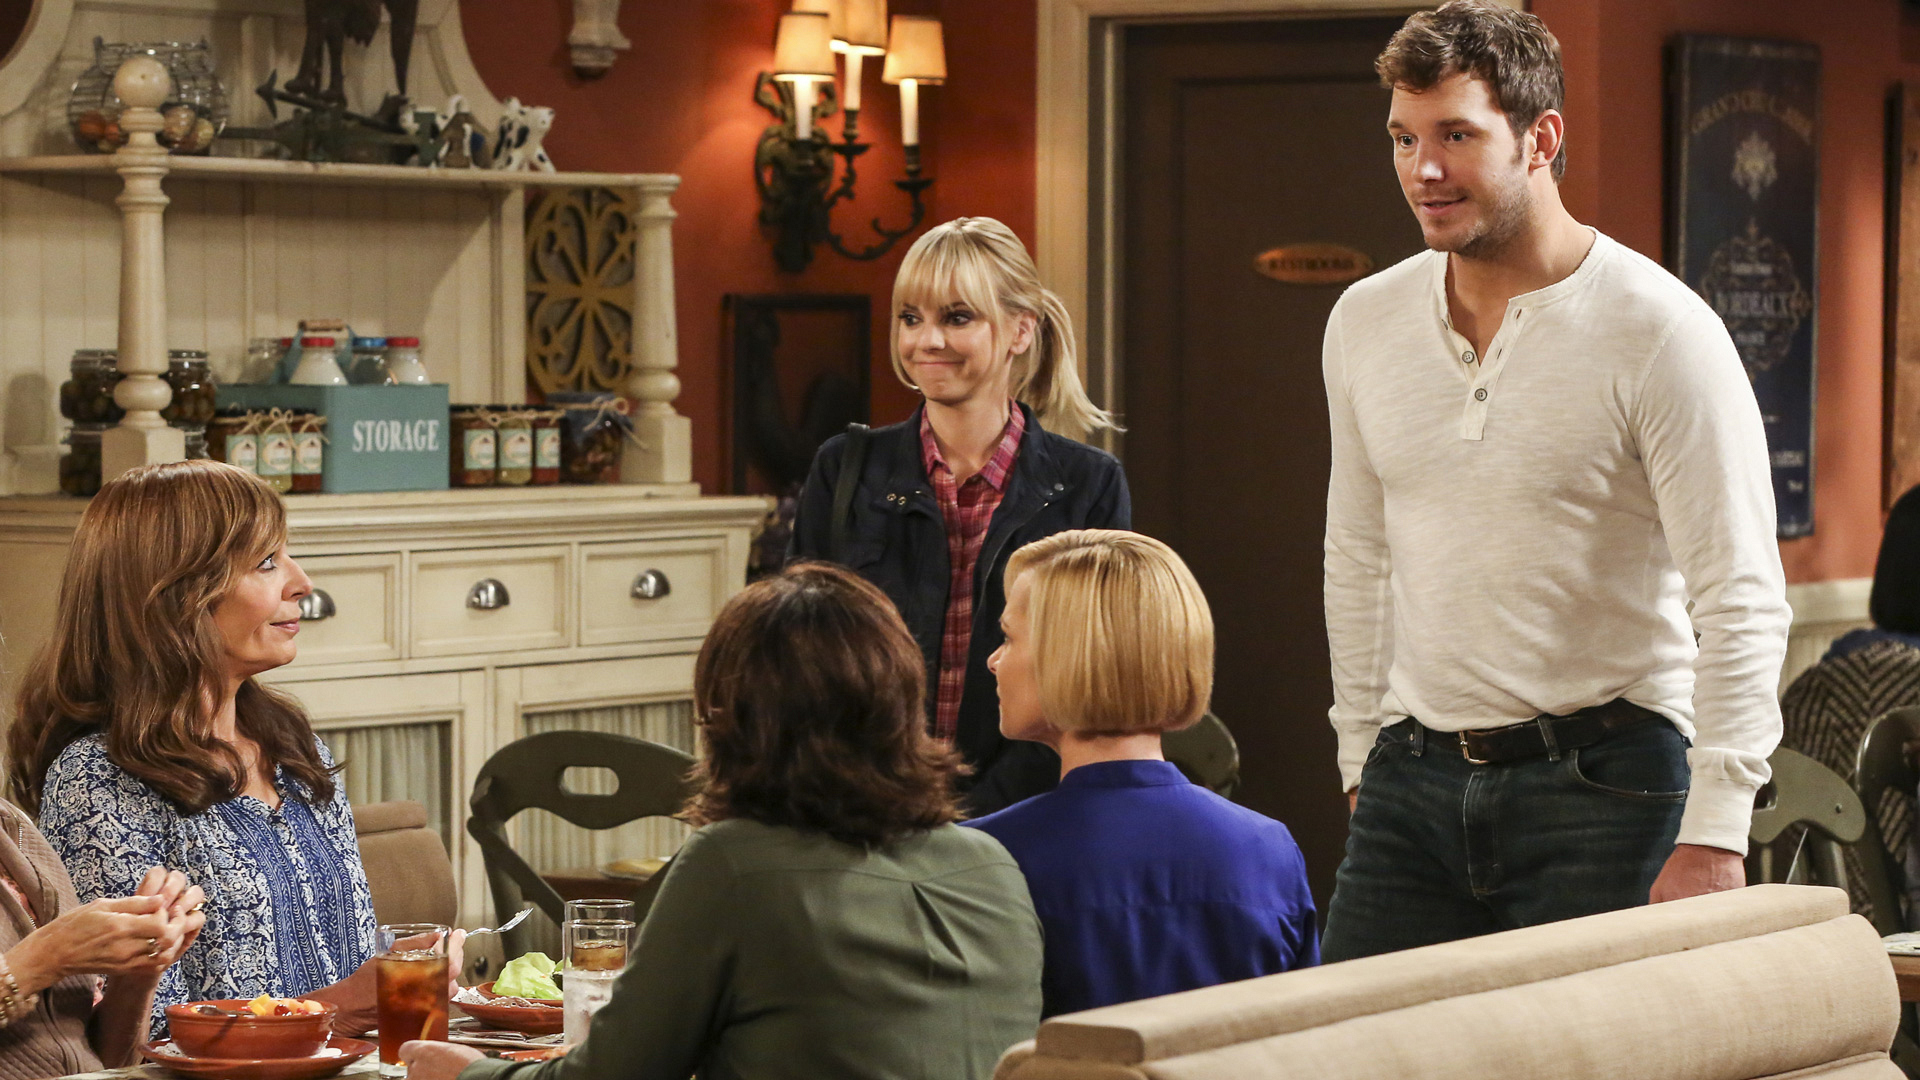 Christy finds out something unexpected about Nick, a handsome stranger.